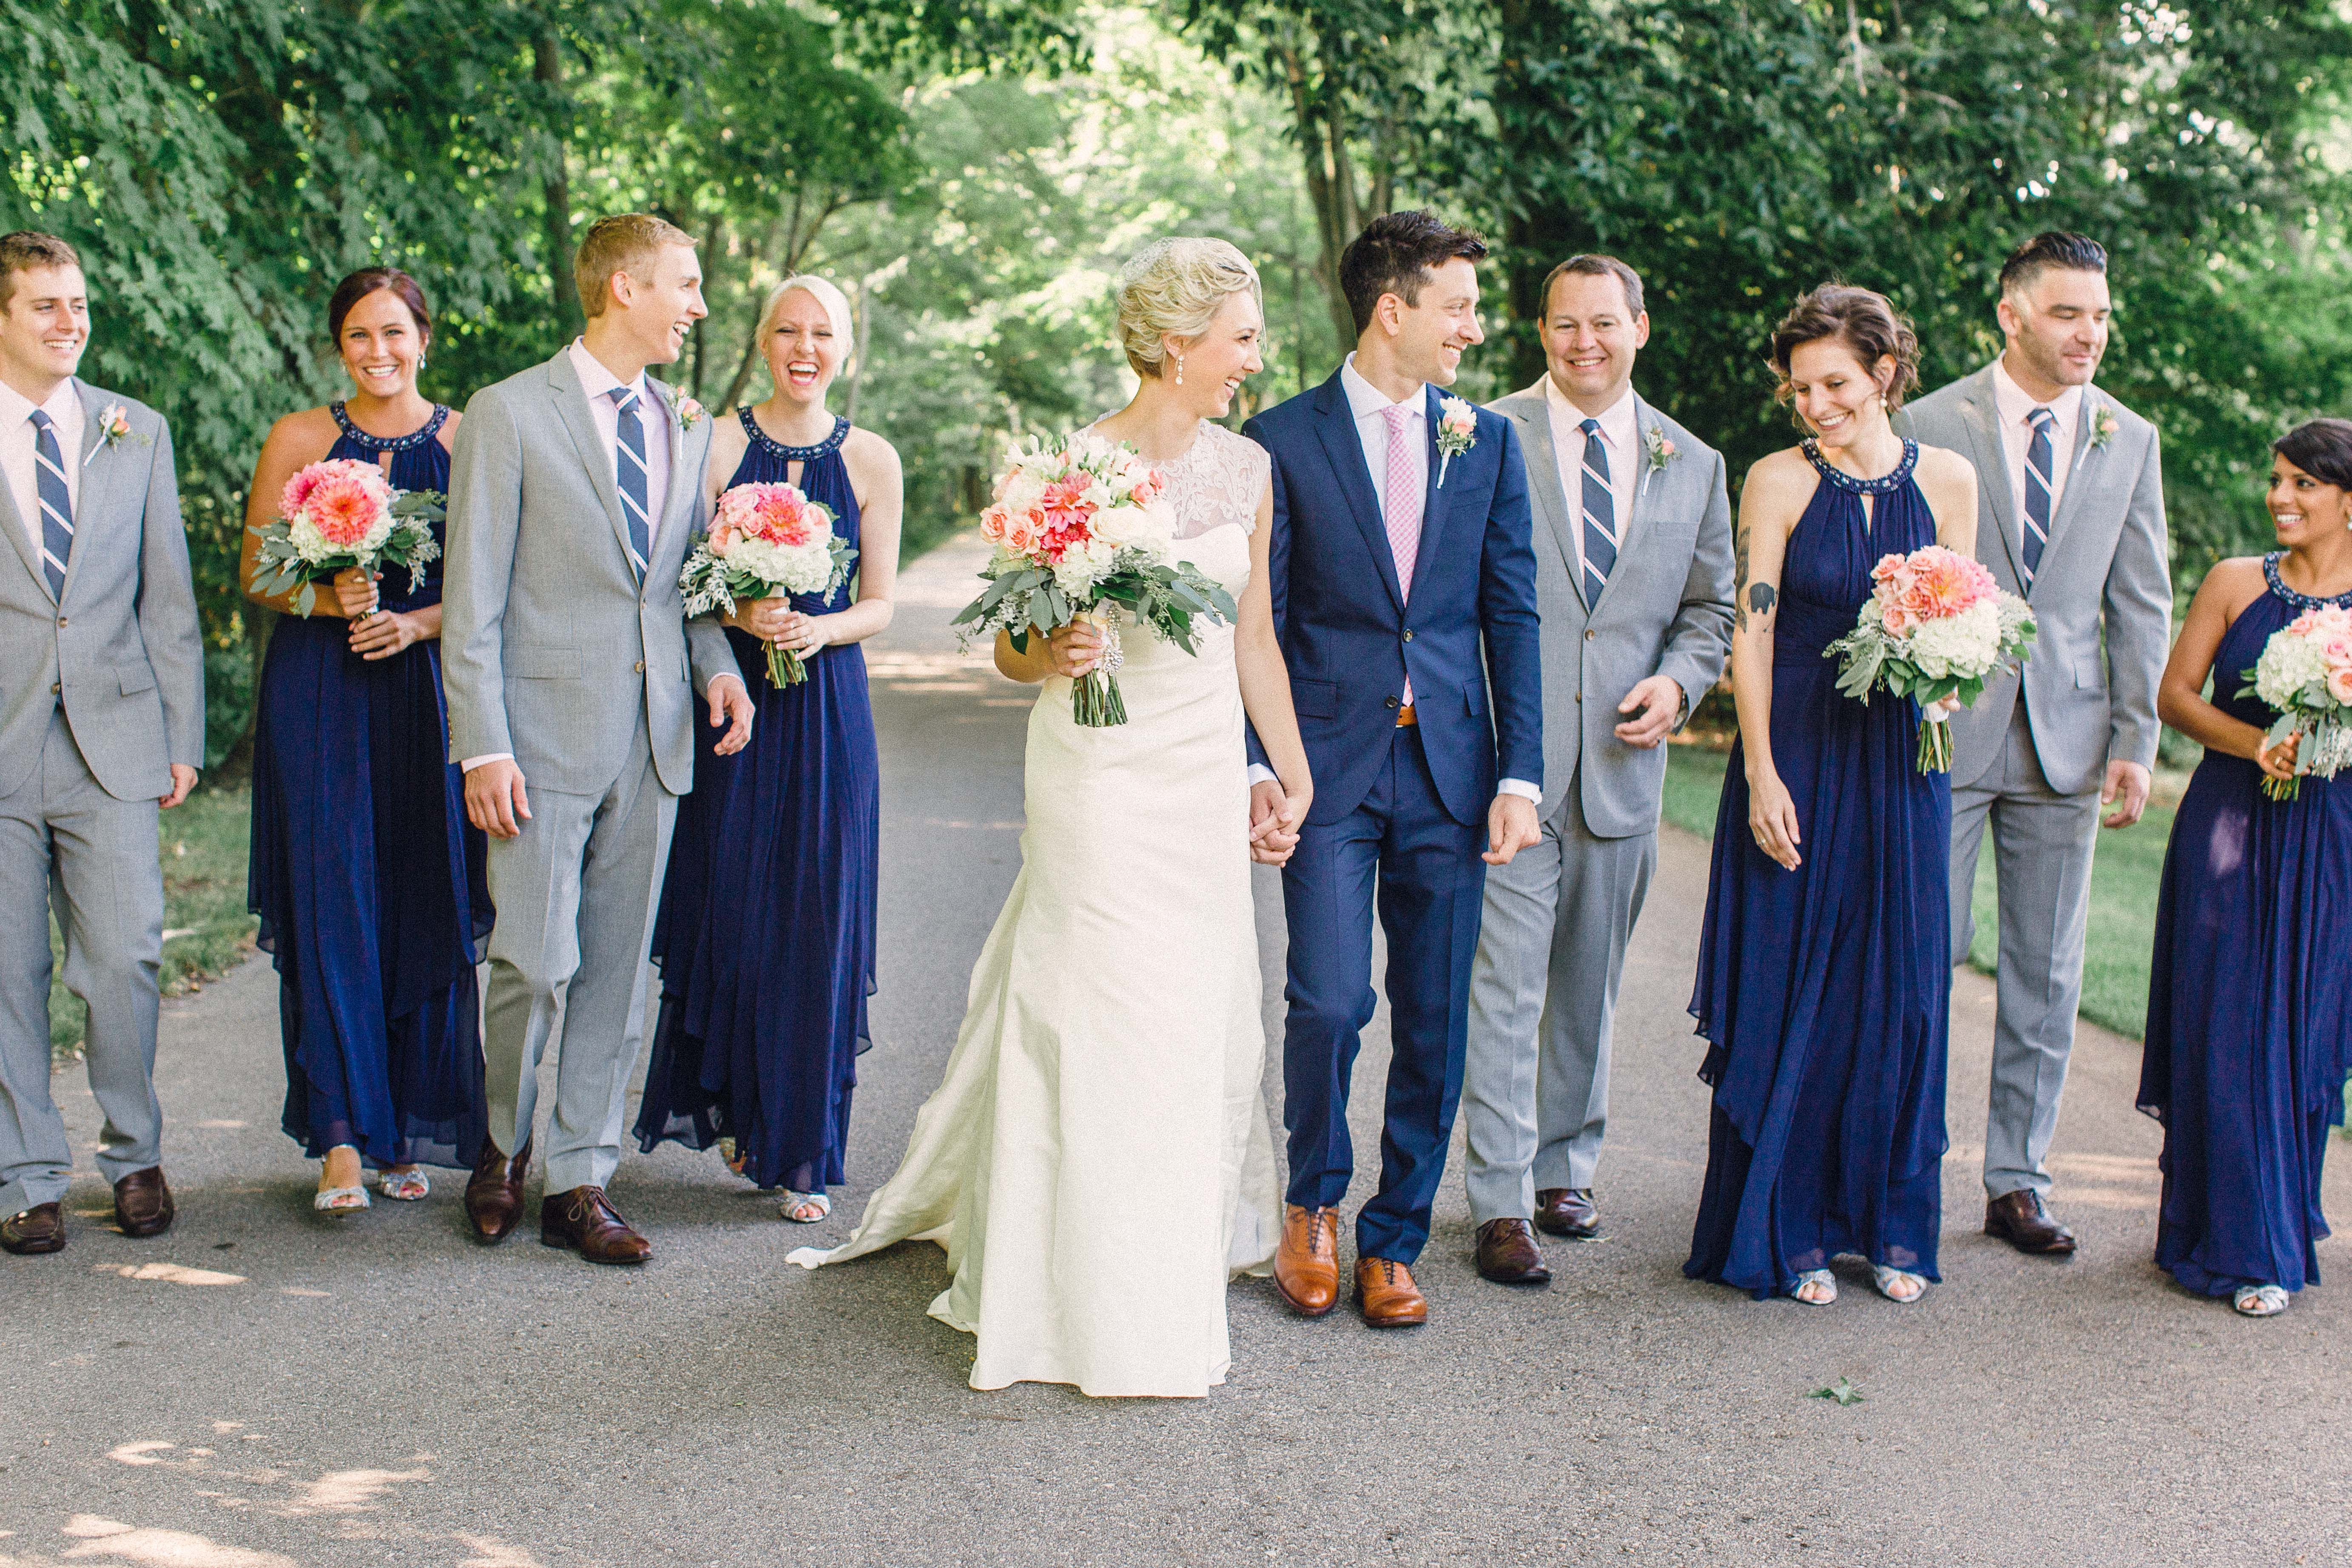 Navy bridal party bridesmaid dresses pinterest navy for Dress for a wedding party